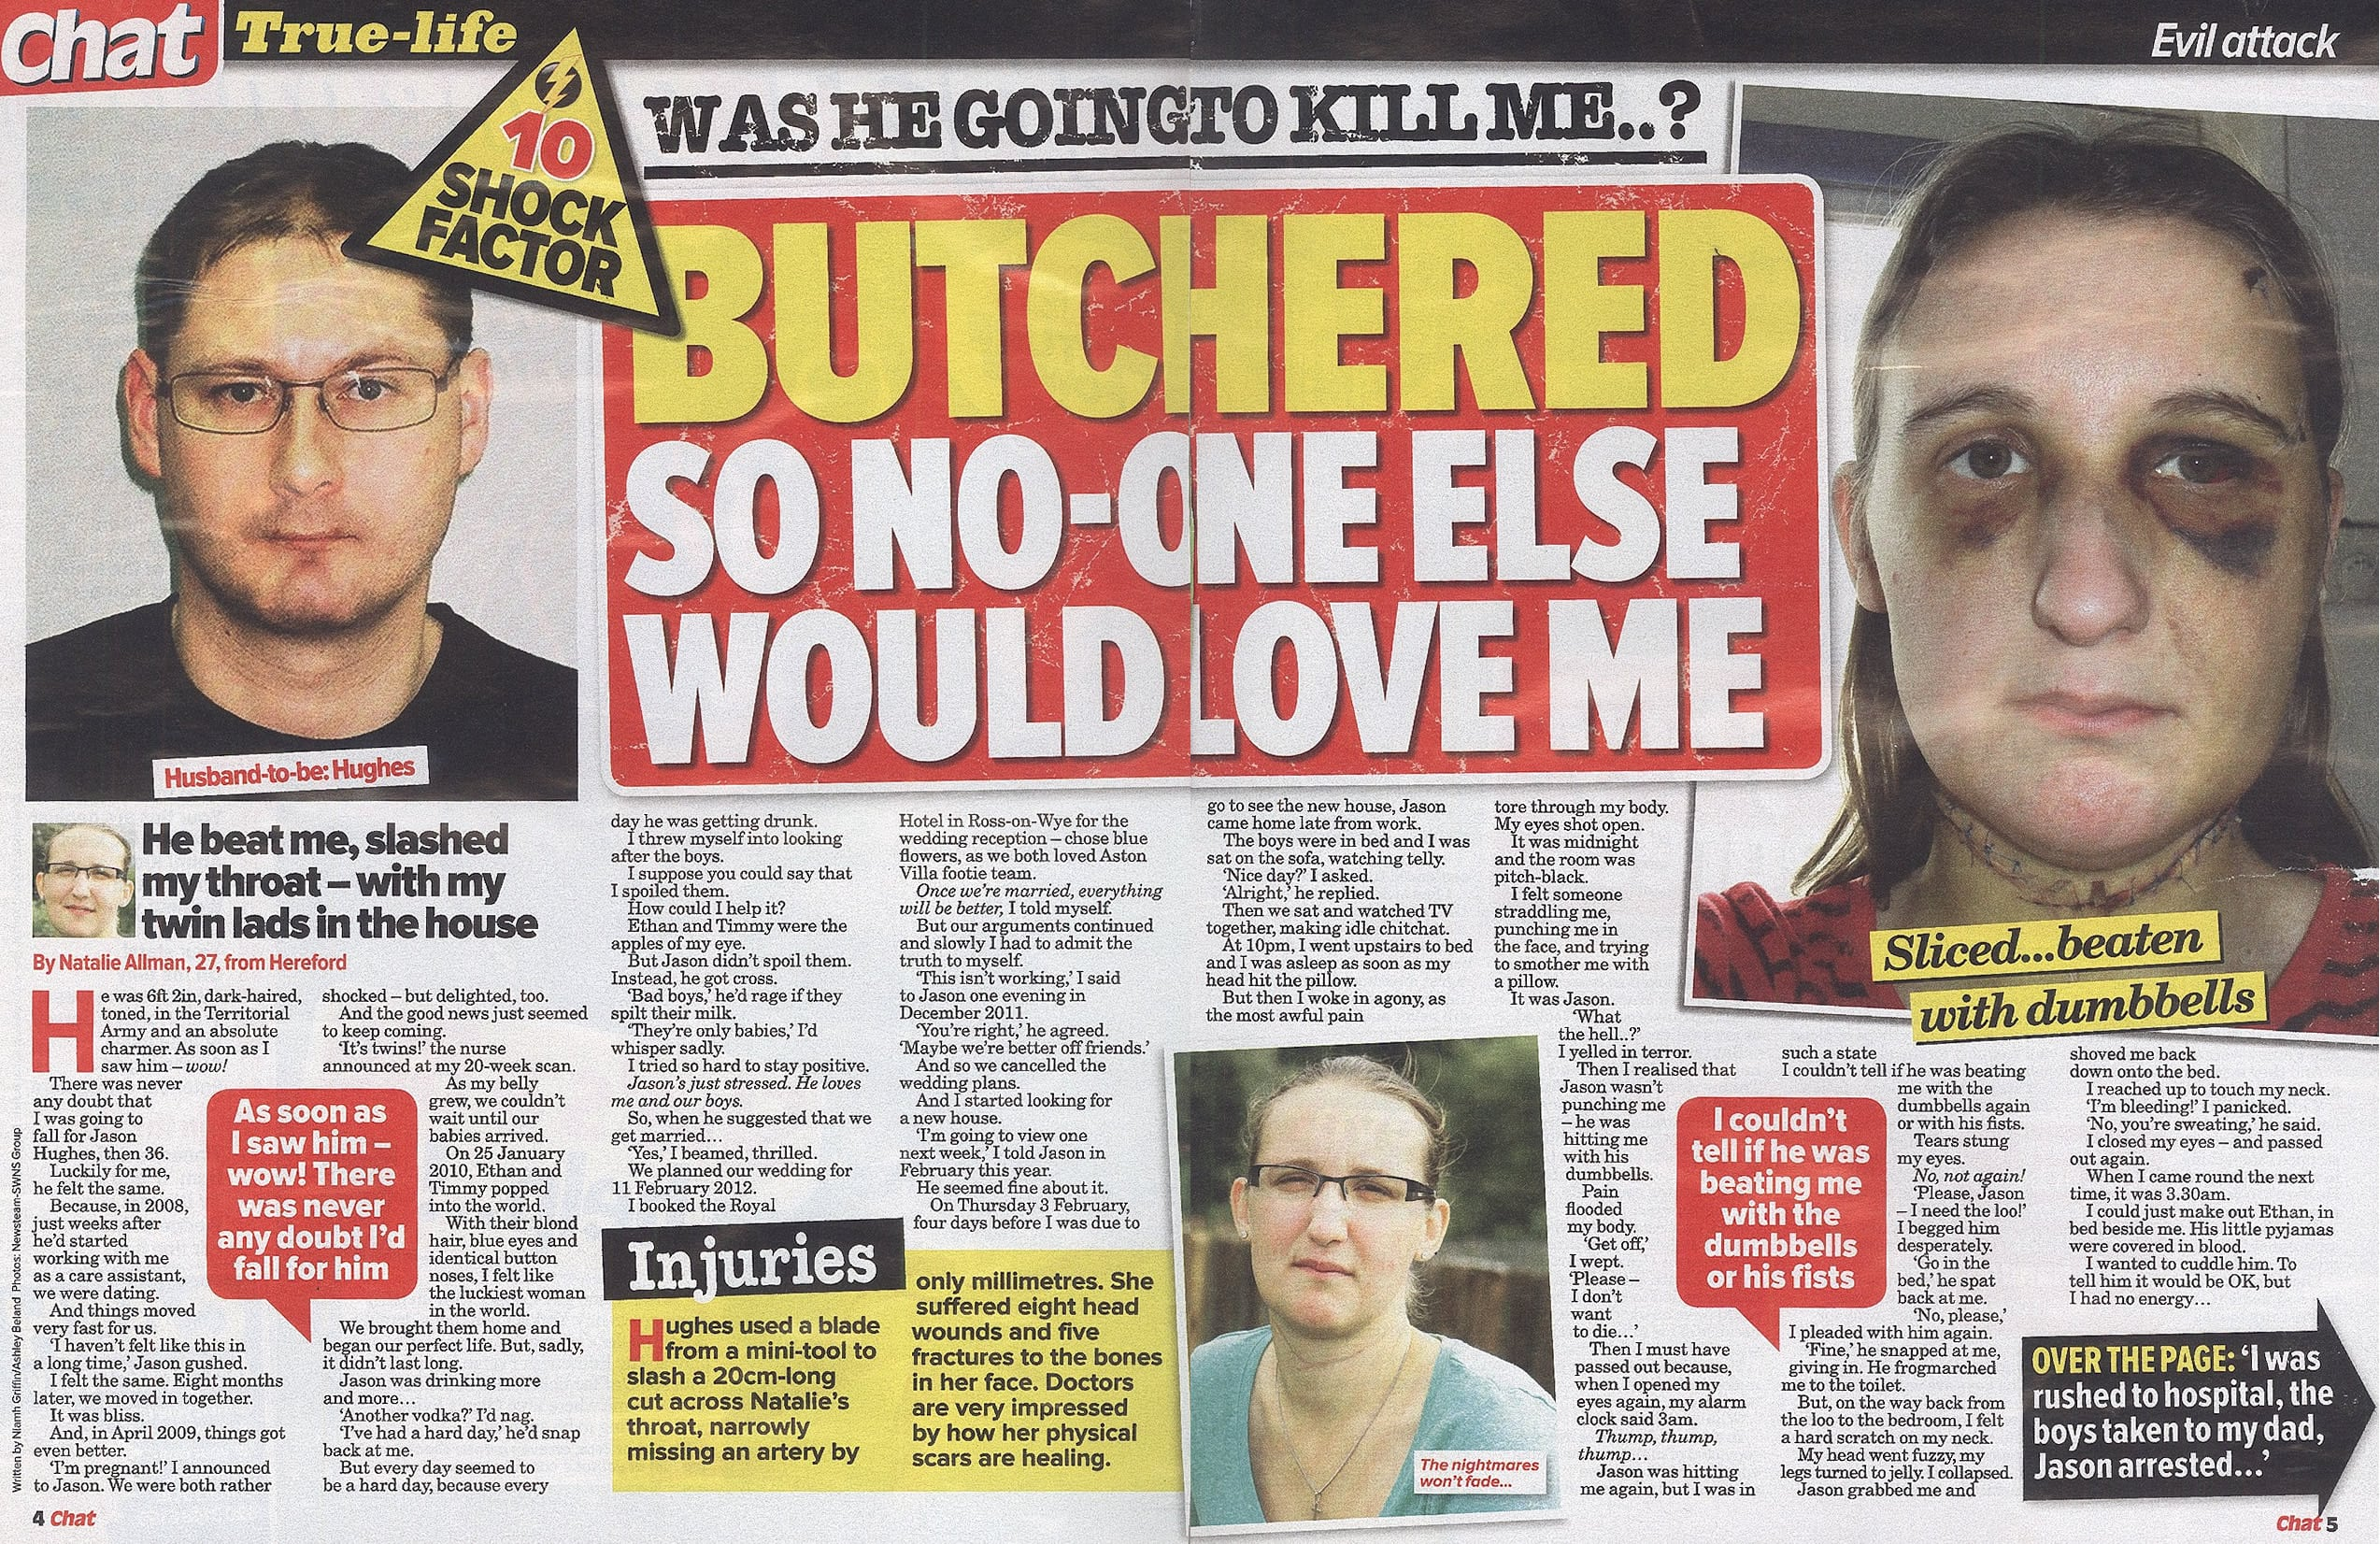 Tortured by Fiancee for Seven Hours